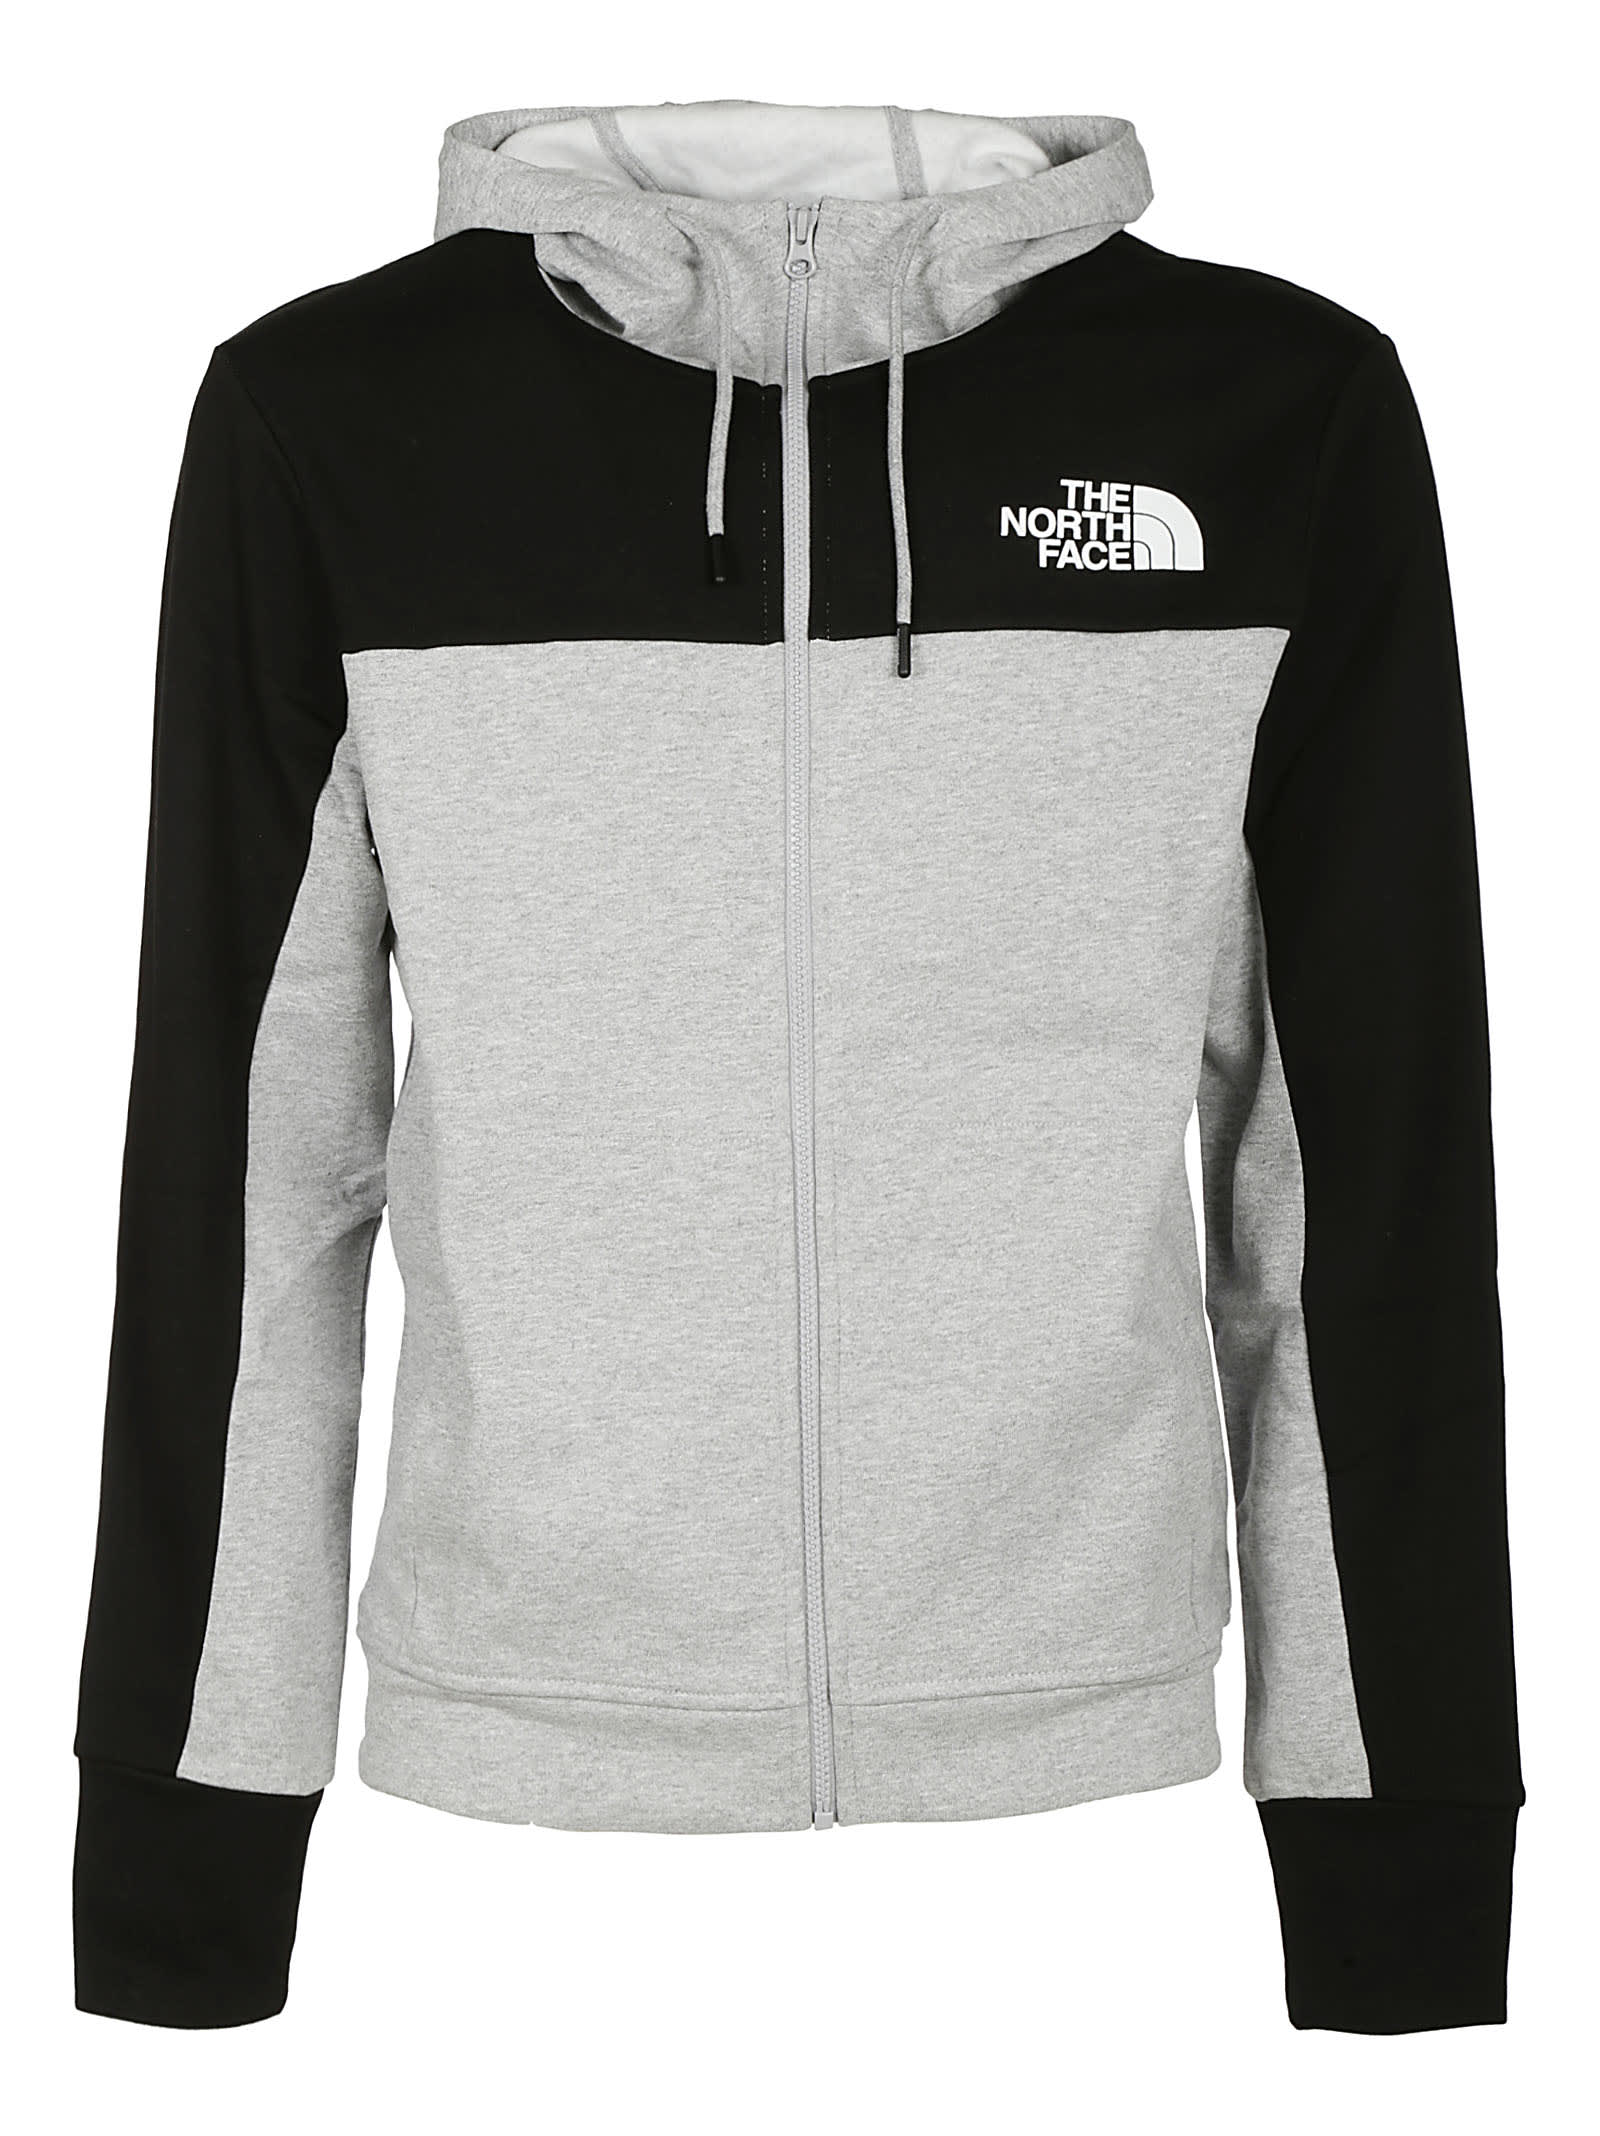 The North Face Fully Zip Hoodie